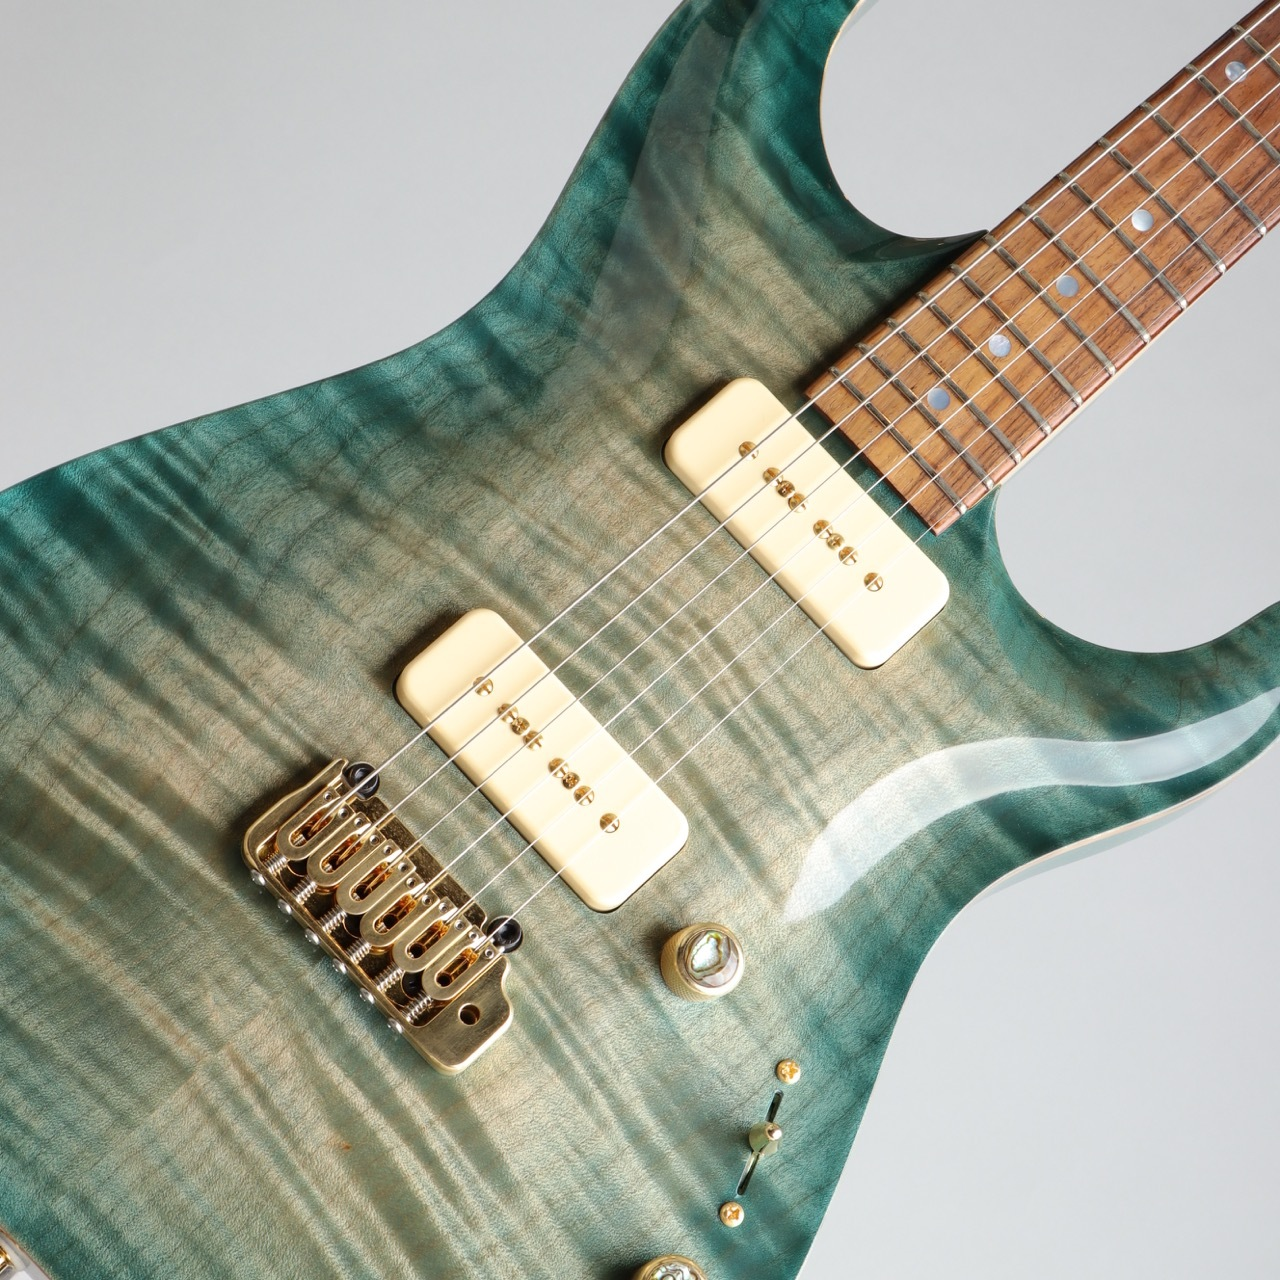 Pensa Custom Guitars MK-1 P-90 Style Aqua Blue Burst 2015